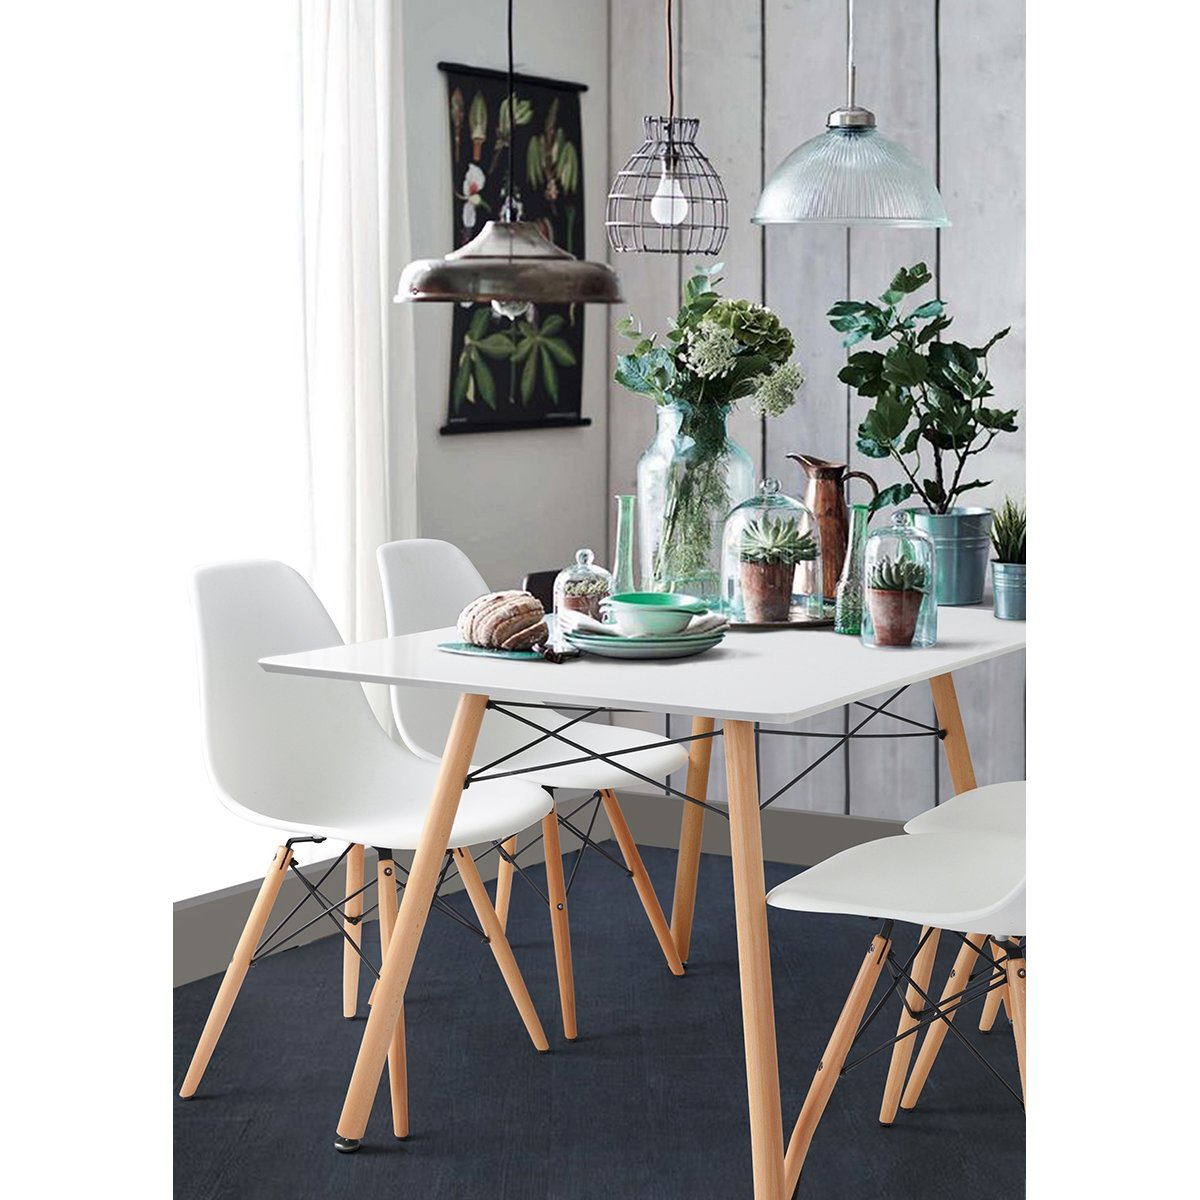 HouseinBox Pack of 4 Dining Scandinavian Chairs Plastic Seat Wooden legs White